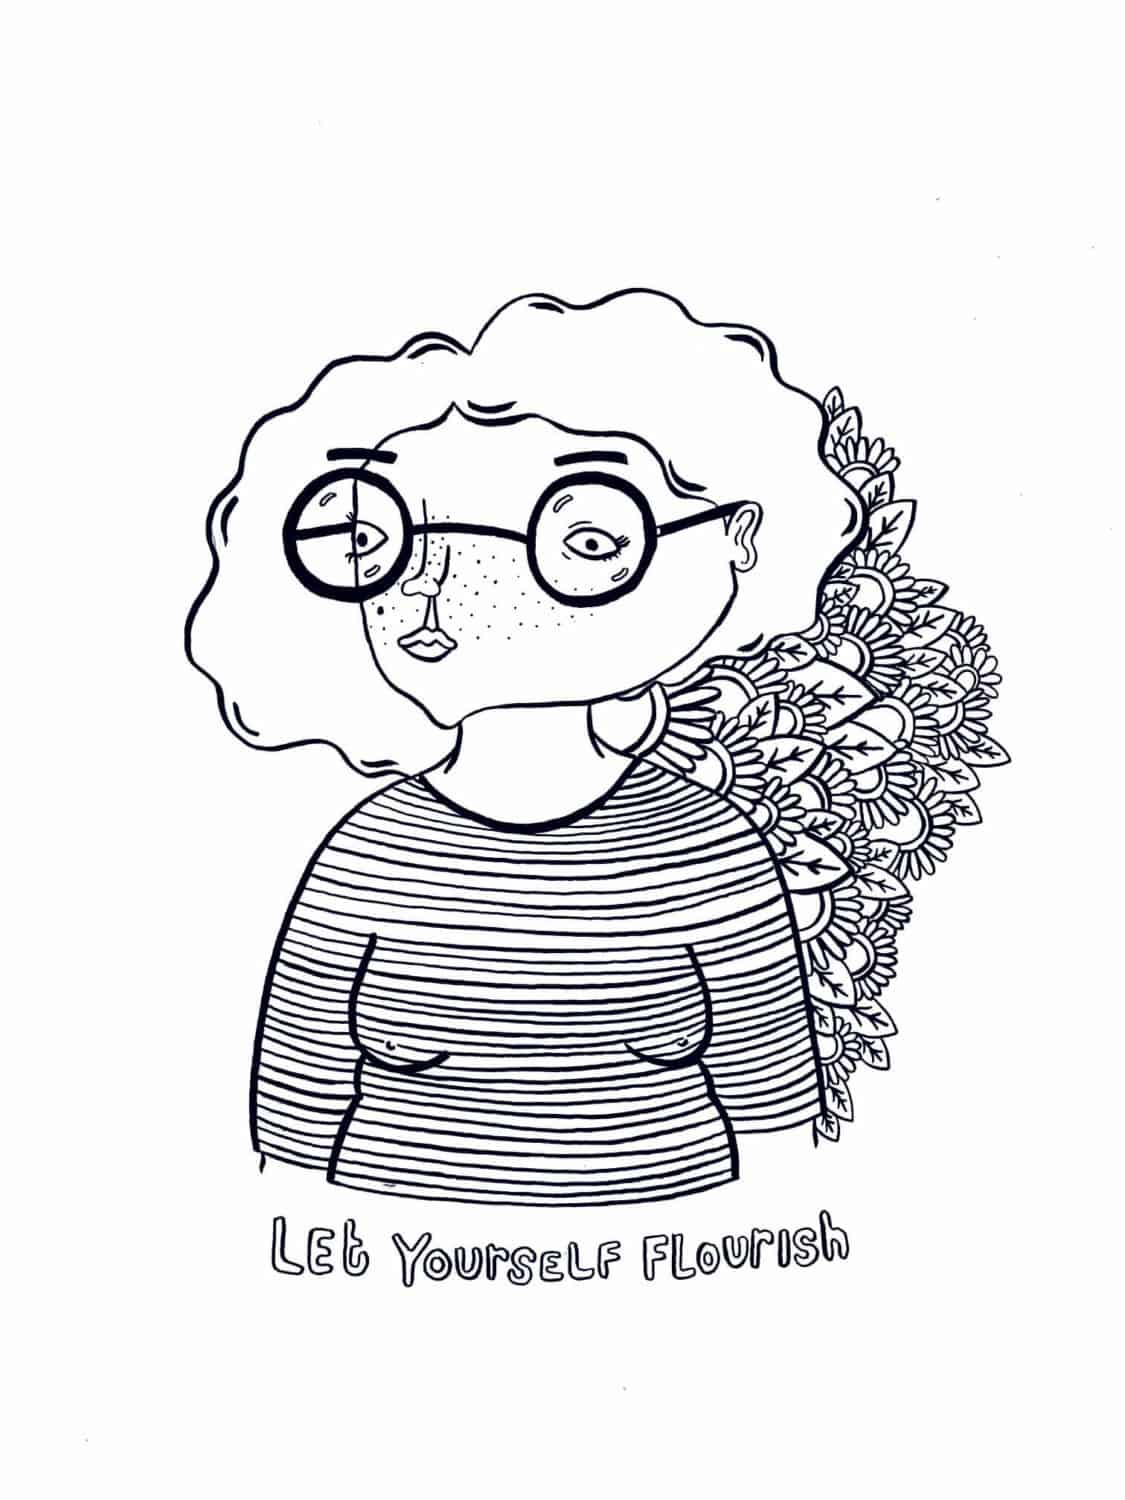 Let Yourself Flourish Colouring by Robyn Ridley